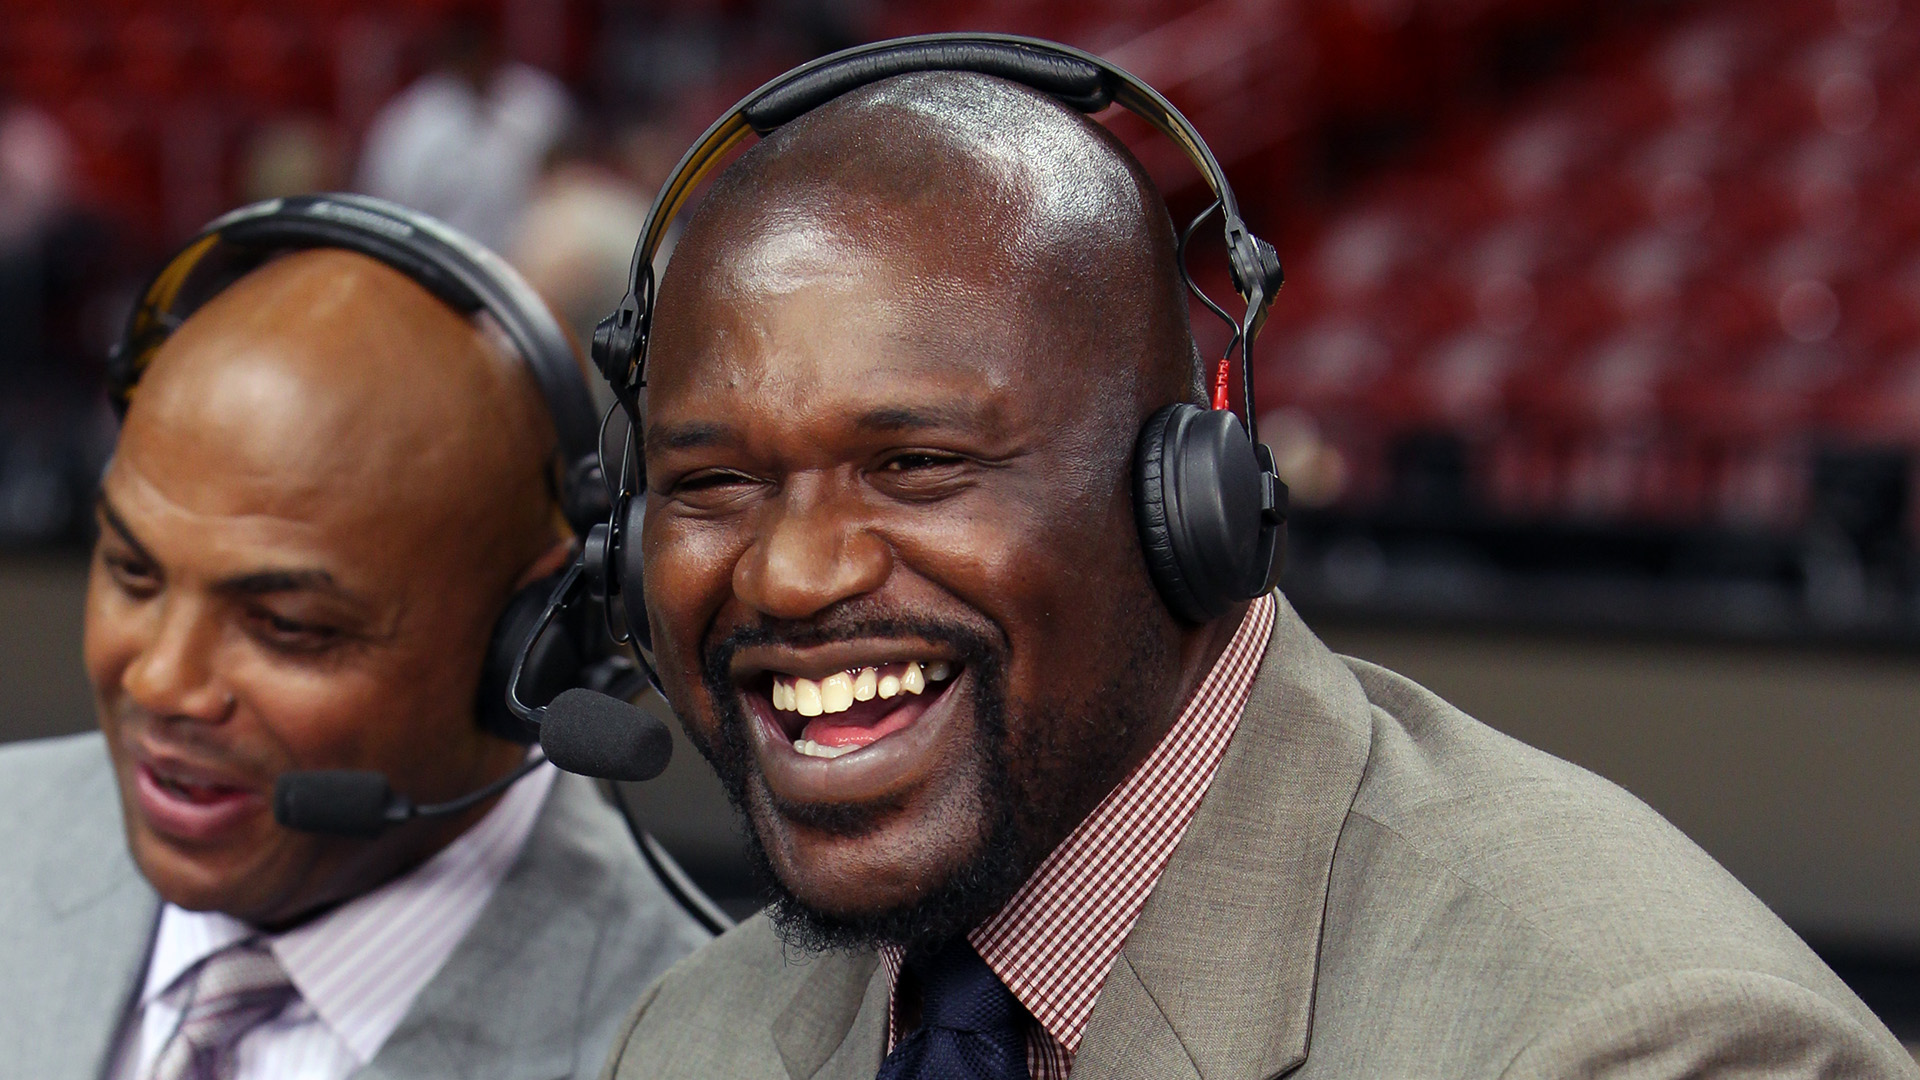 Sneak peek: Shaq on relationship with Barkley